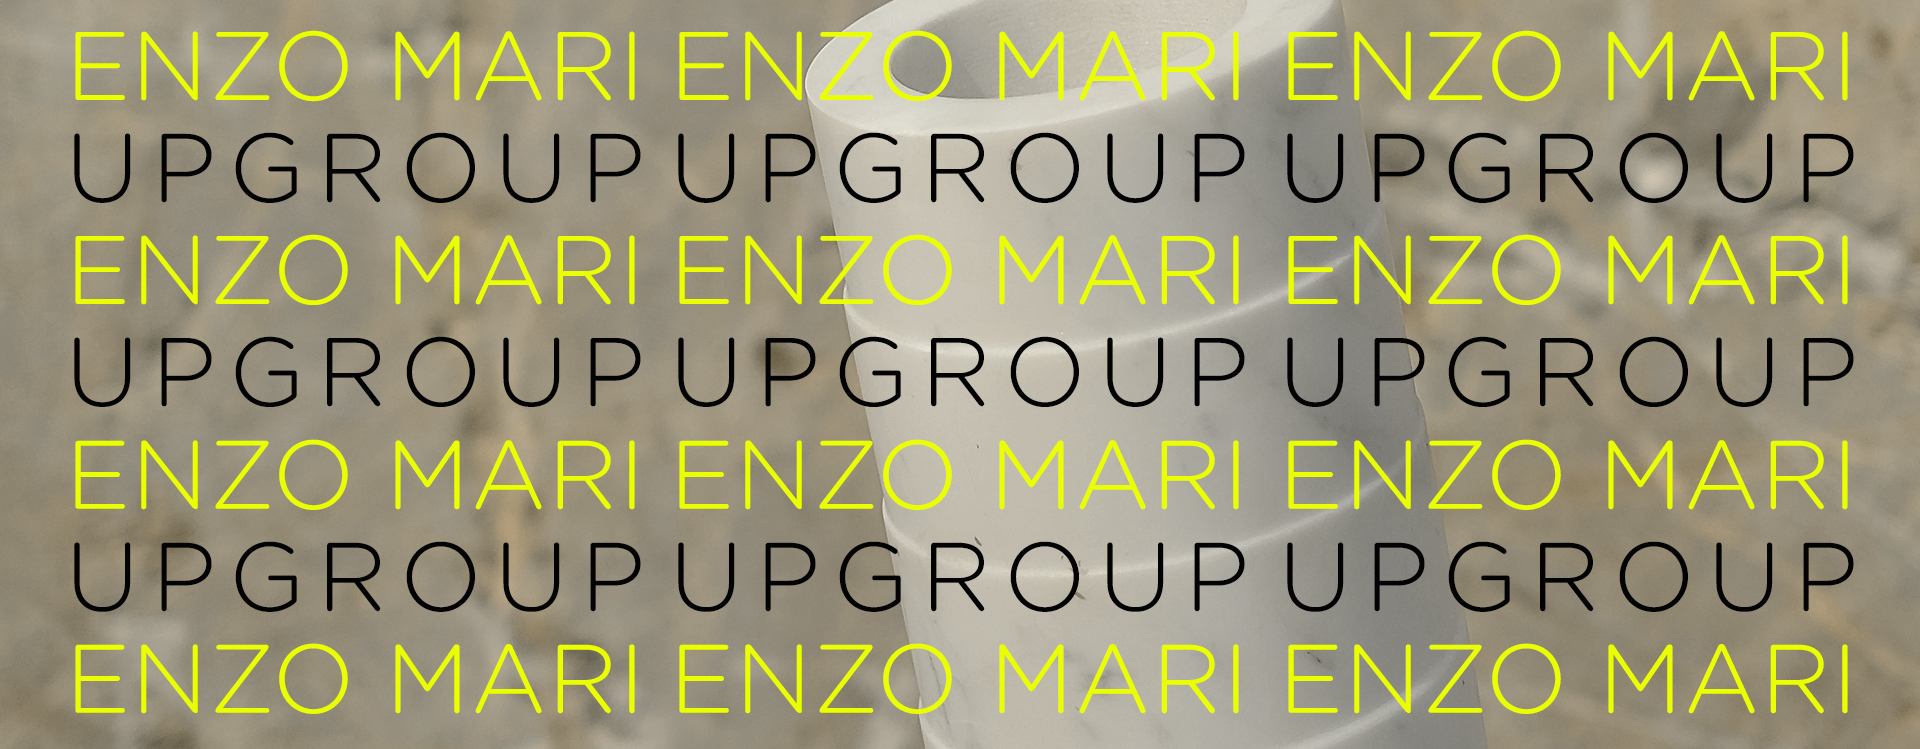 Enzo Mari | Upgroup